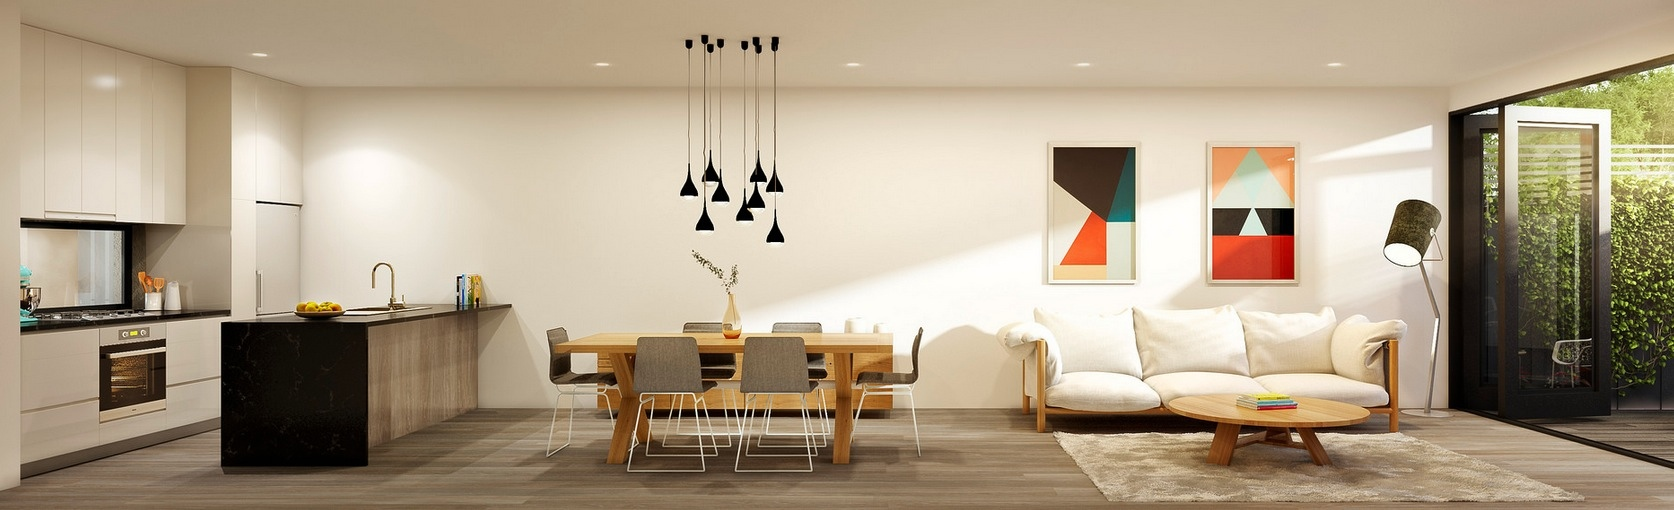 Apartment Decorating Ideas No Matter What Kind Of: Stylish-one-room-apartment